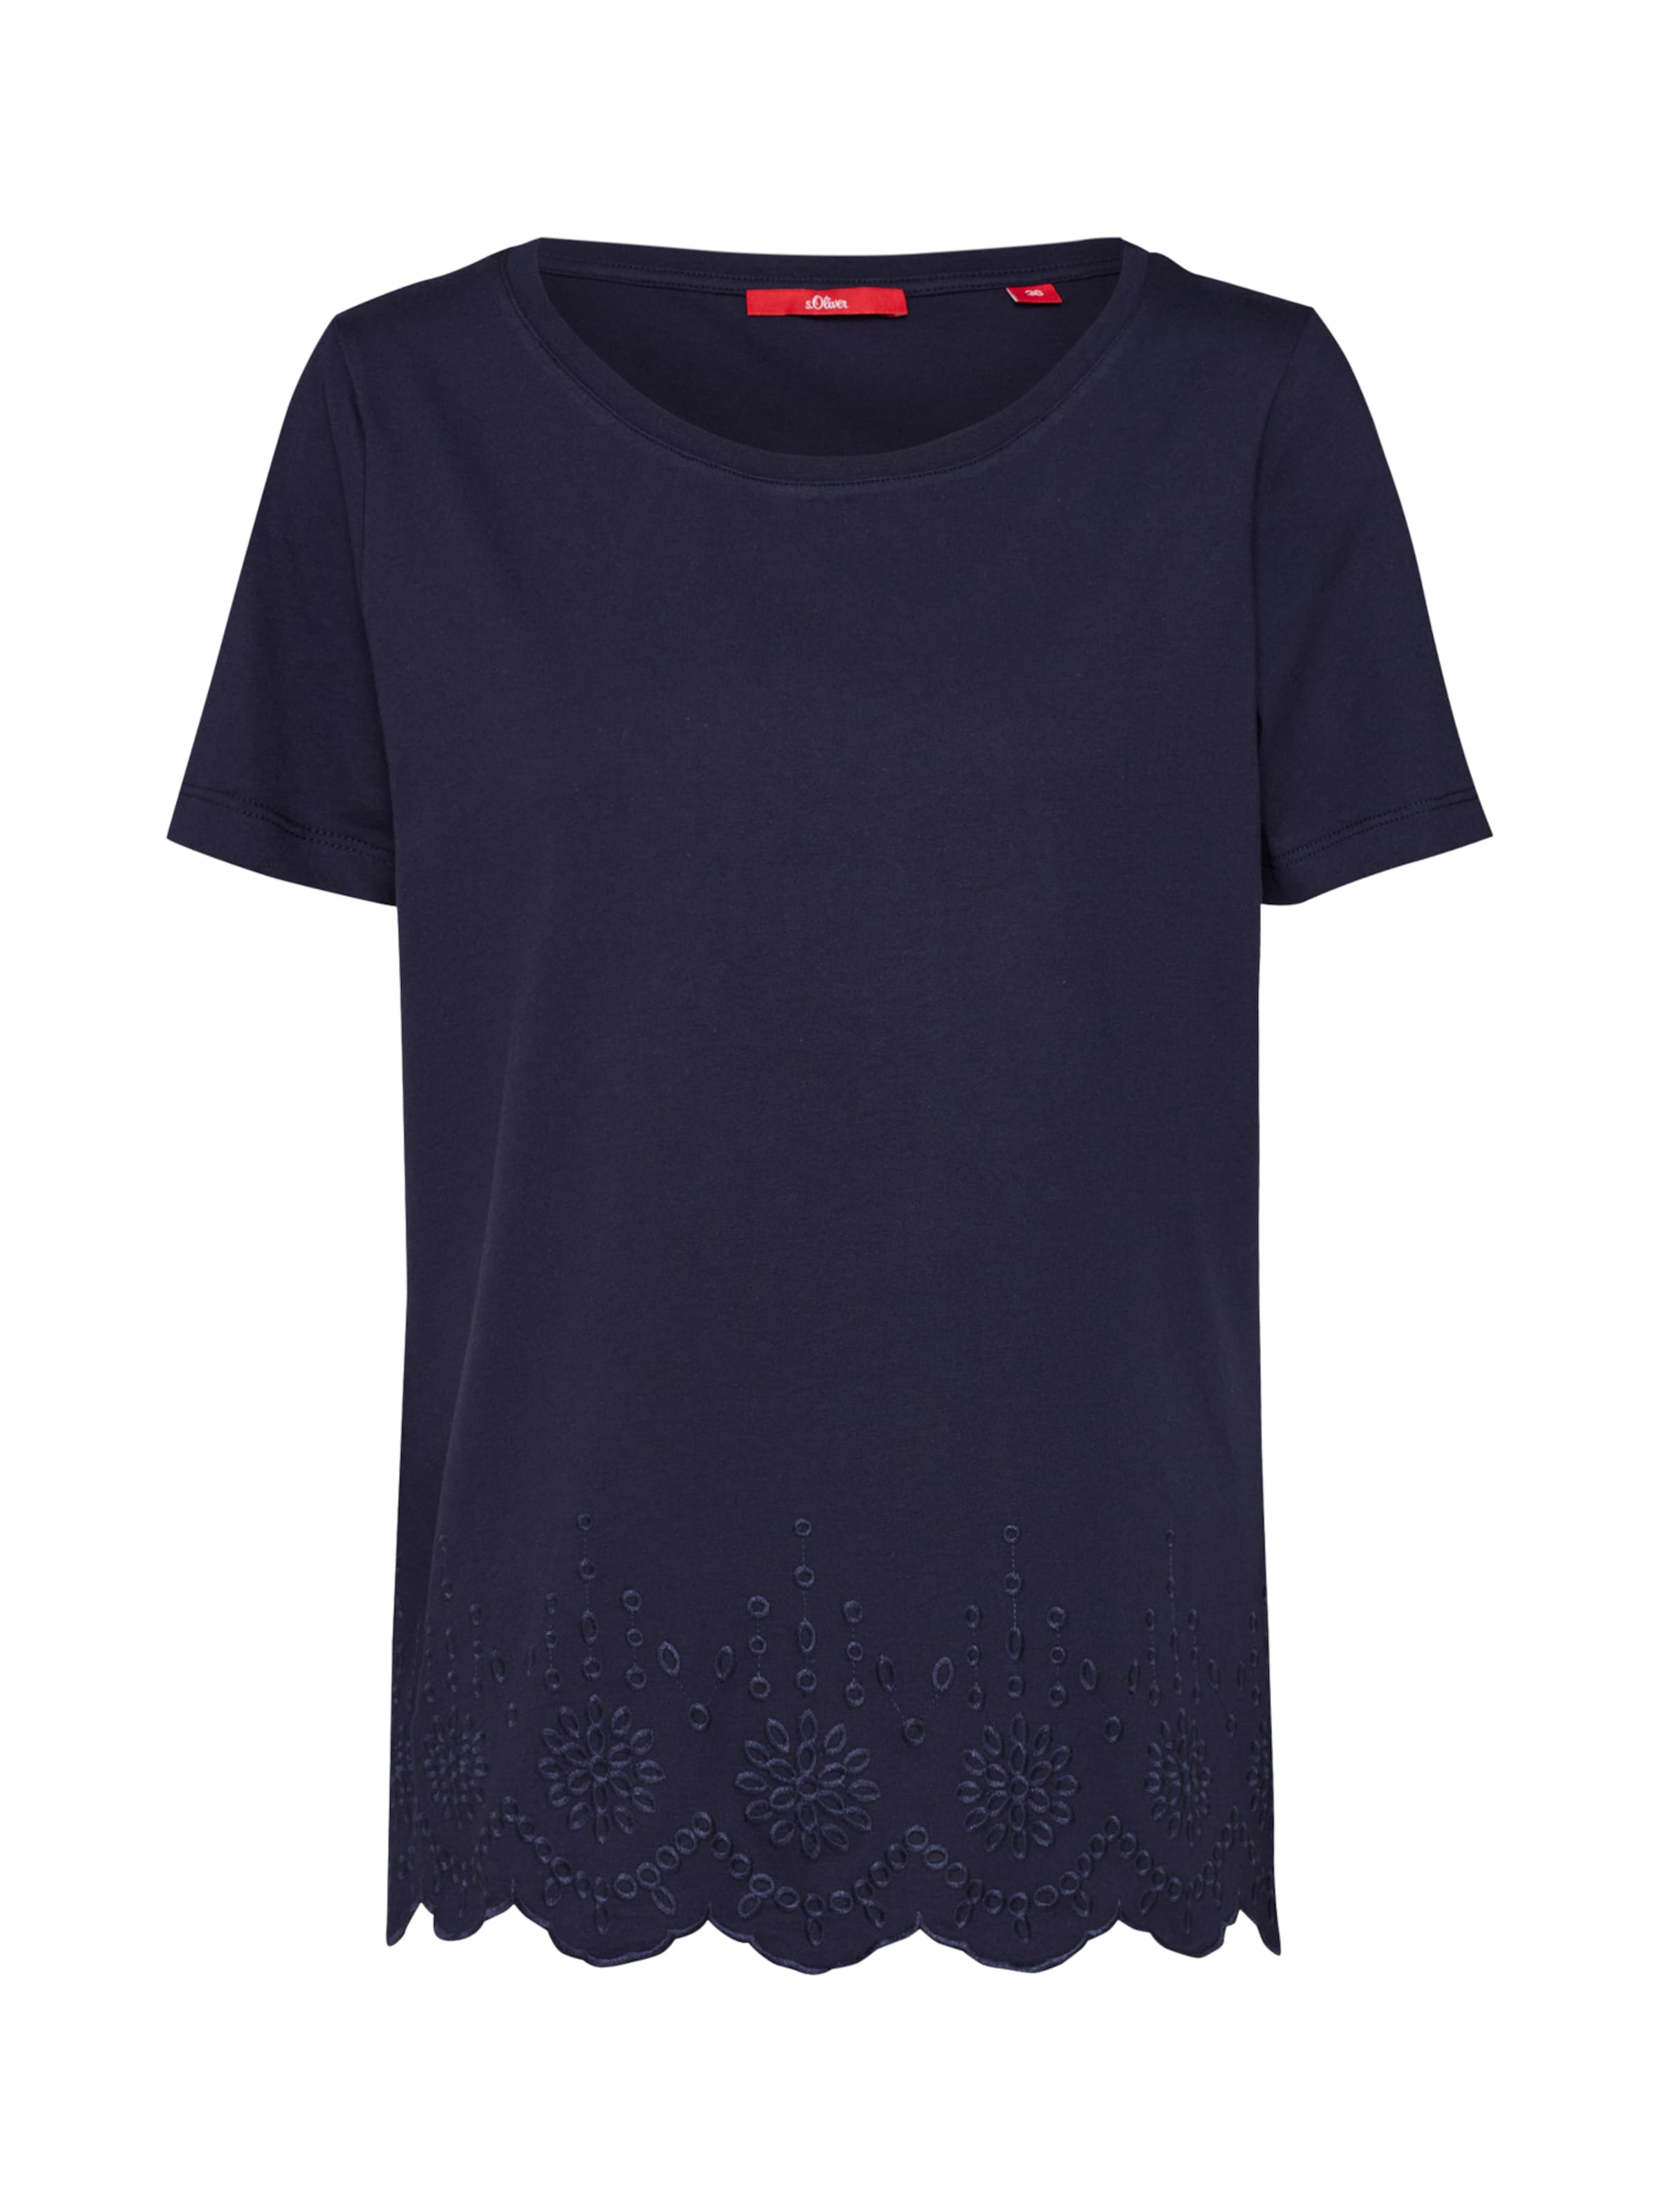 S oliver Navy Jerseyshirt Red Label In wkXlPuOZiT